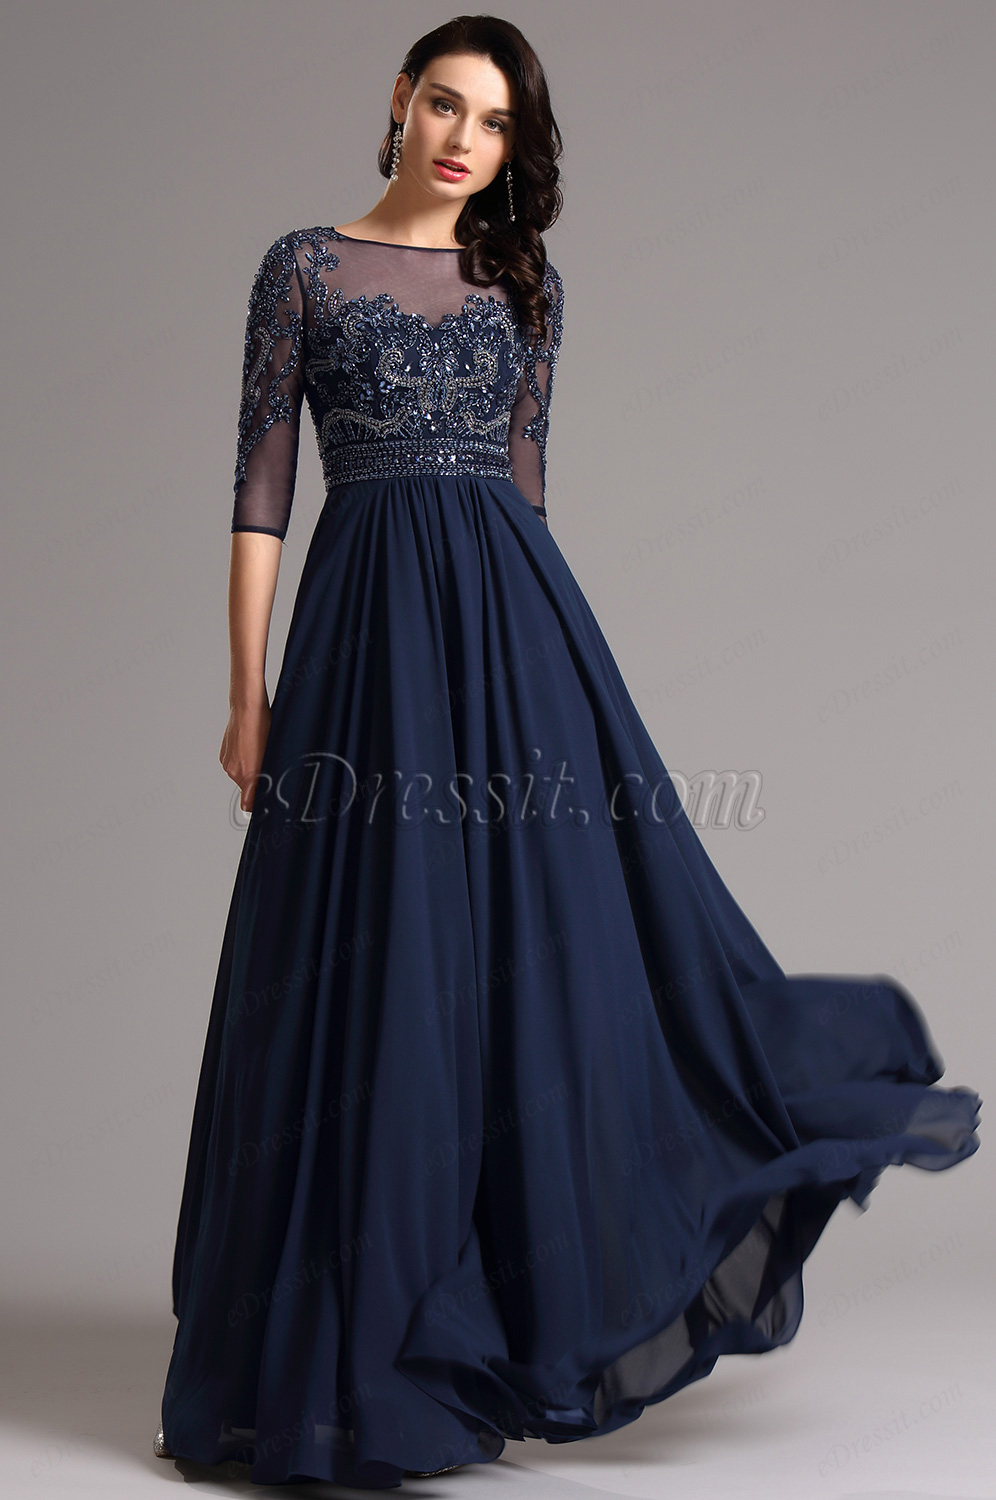 Fashion 2016 Collection, 2016 New Arrival Dresses, Formal Dresses ...